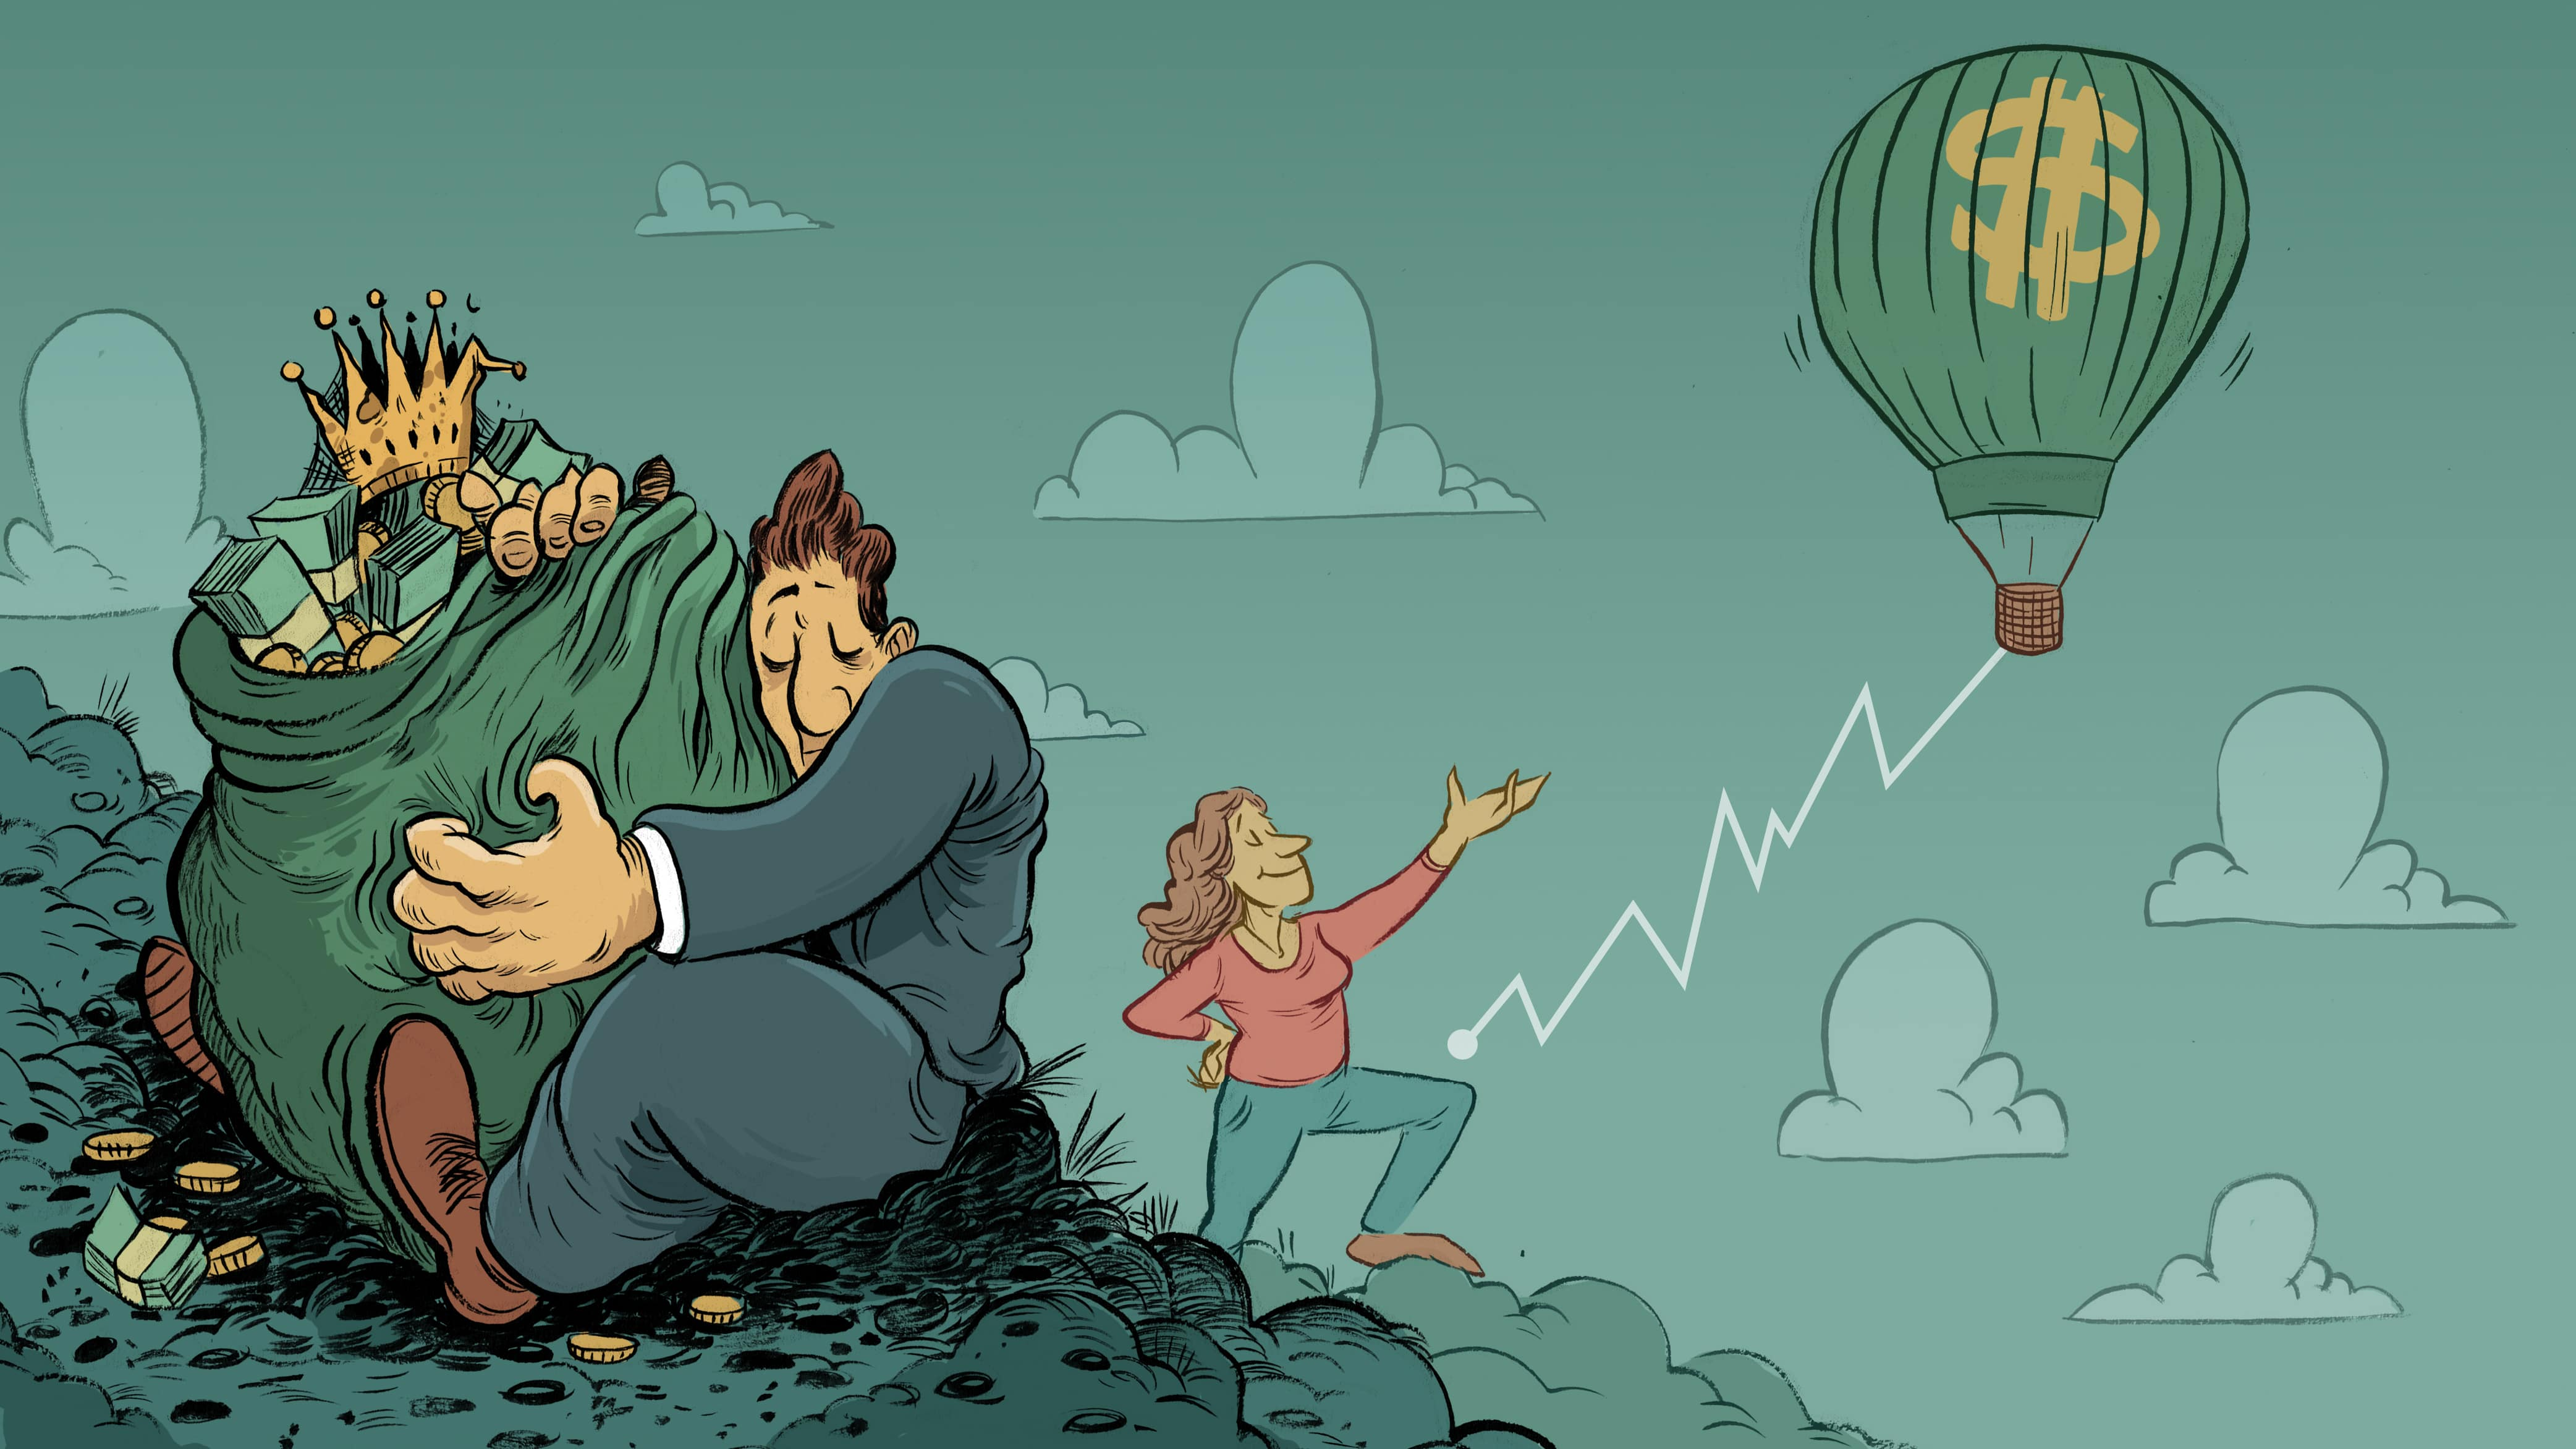 An Illustration of a man in a suit holding on to a bag of cash, with an old rusted crown in it. The cash isn't growing its just there. In the background is a lady who is investing and that is represented with a hot air balloon which is slowly and steadily rising.